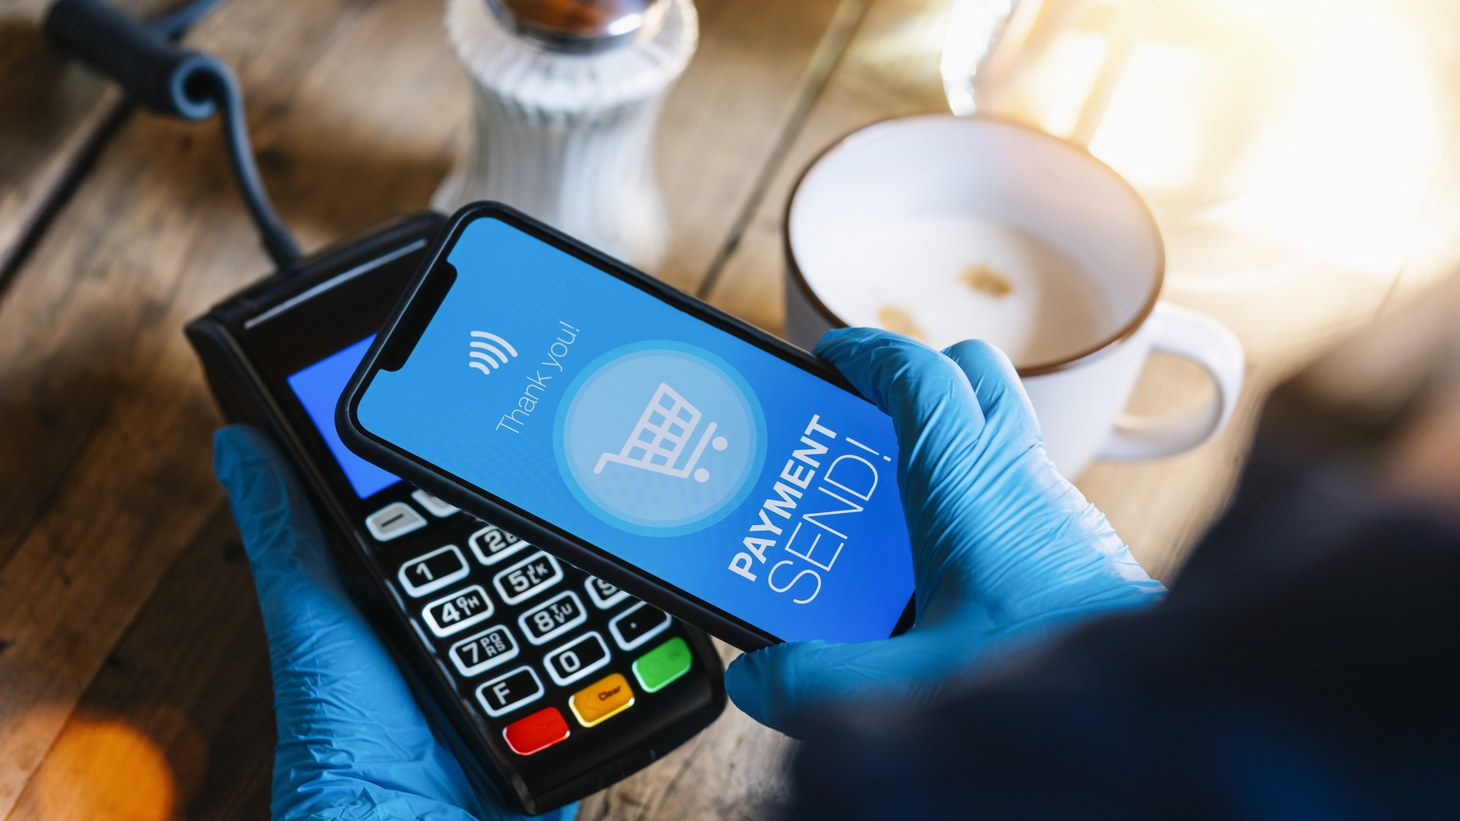 The number of businesses that have gone cashless in the United States has doubled since the pandemic began, according to a recent survey by Square.